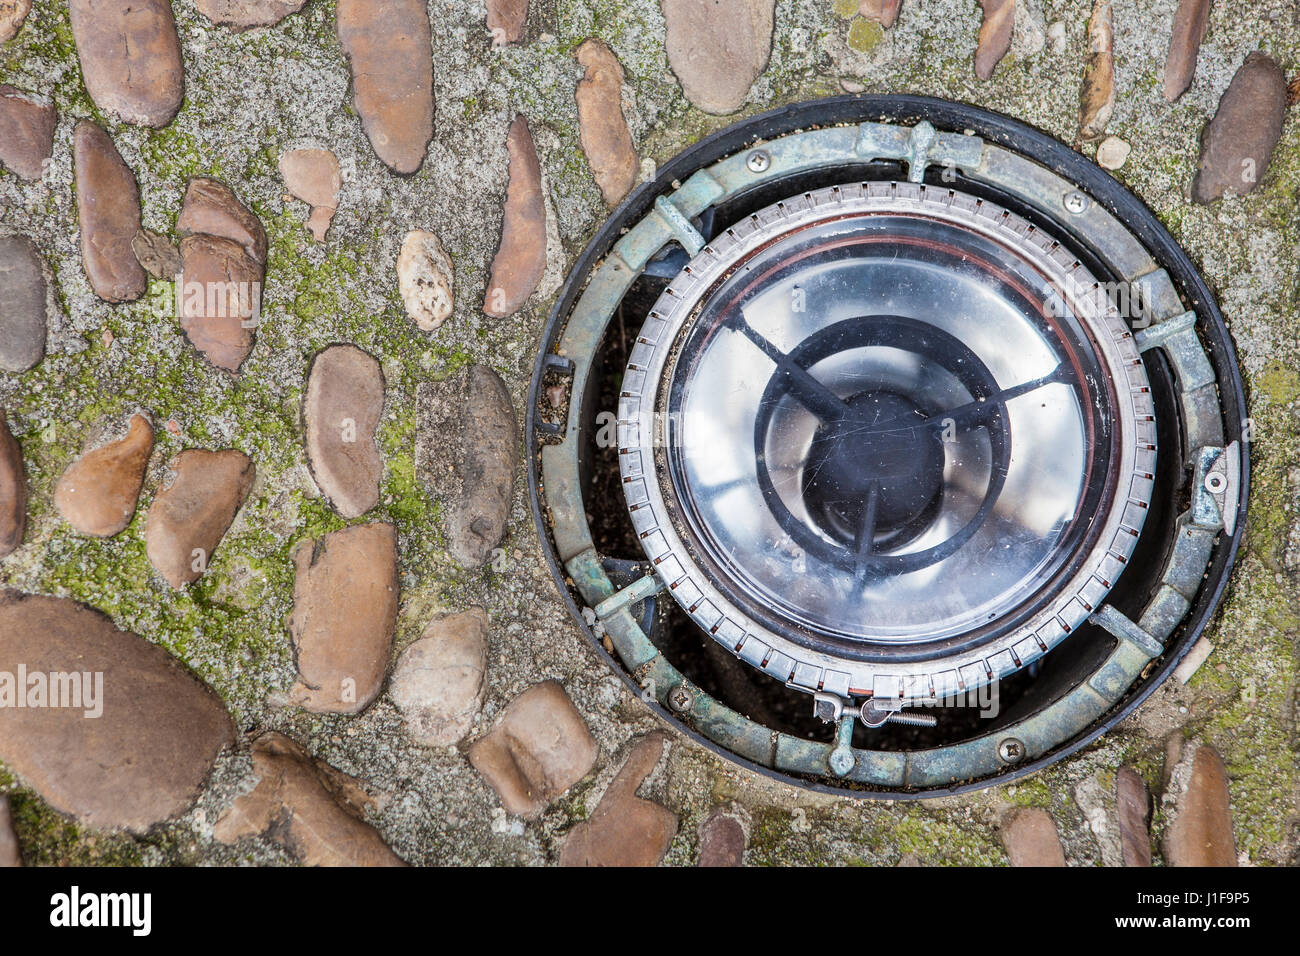 Ground light at Plasencia medieval old town, Caceres, Extremadura, Spain - Stock Image